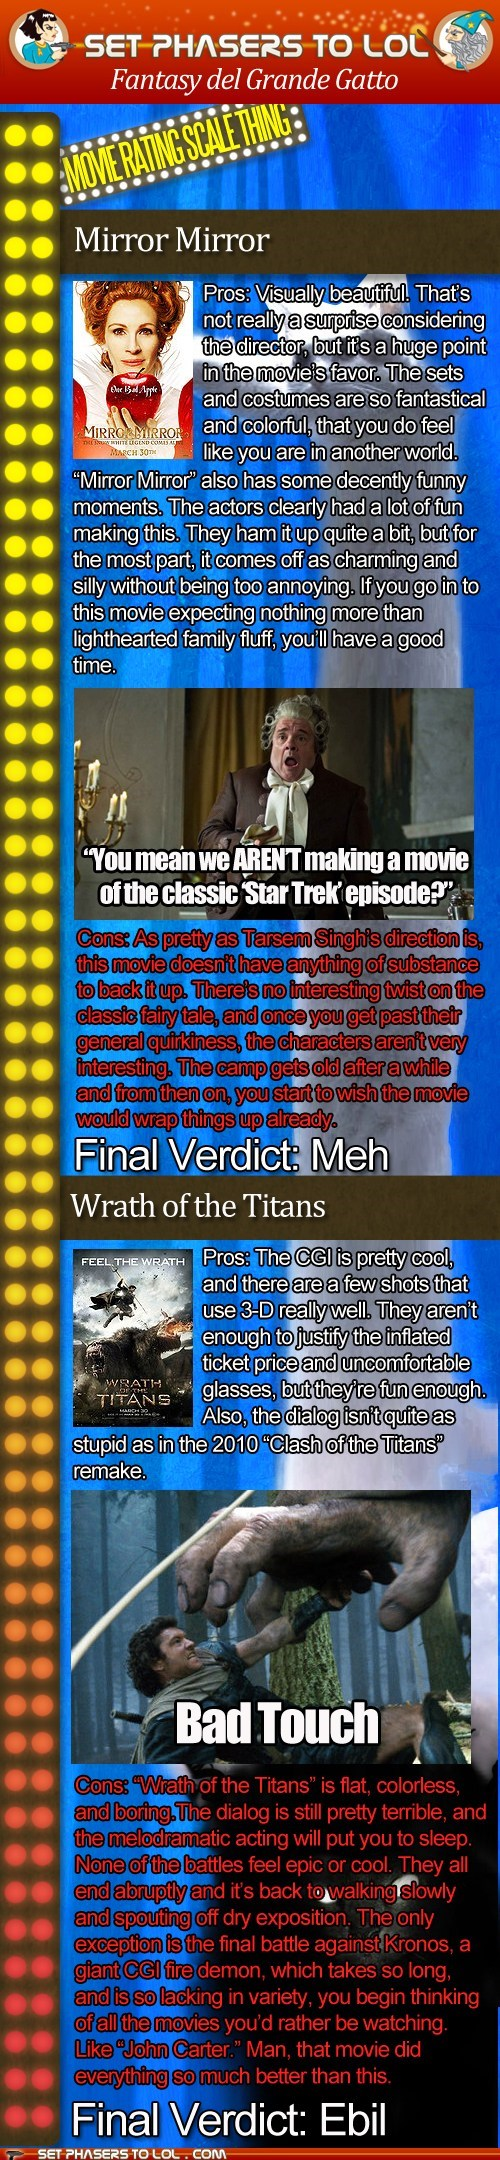 cinema clash of the titans grande gatto julia roberts mirror mirror nathan lane News and Reviews review movies Sam Worthington snow white wrath of the titans